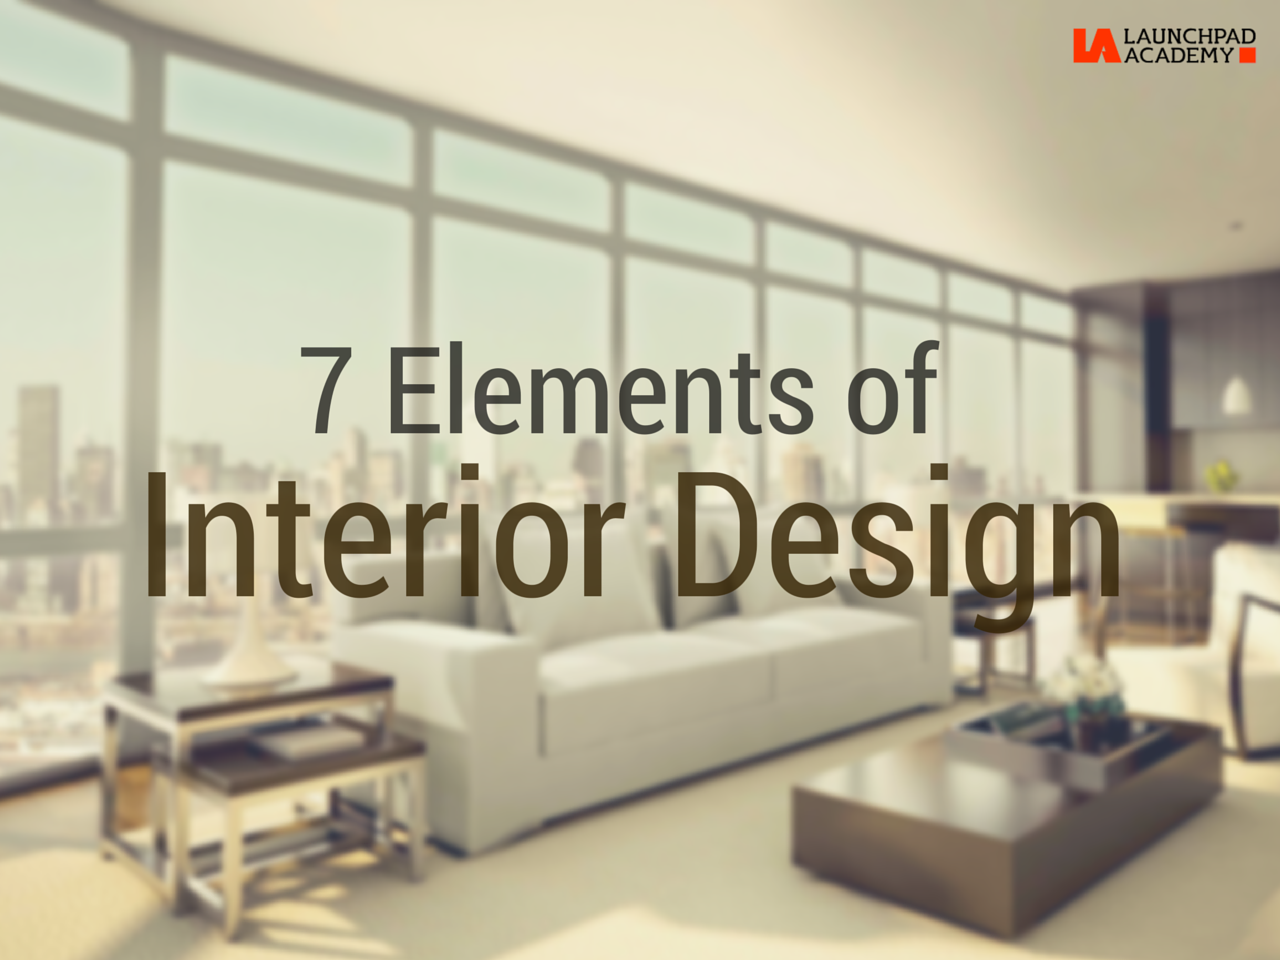 18 elements of design interior design images design for Interior design 7 elements